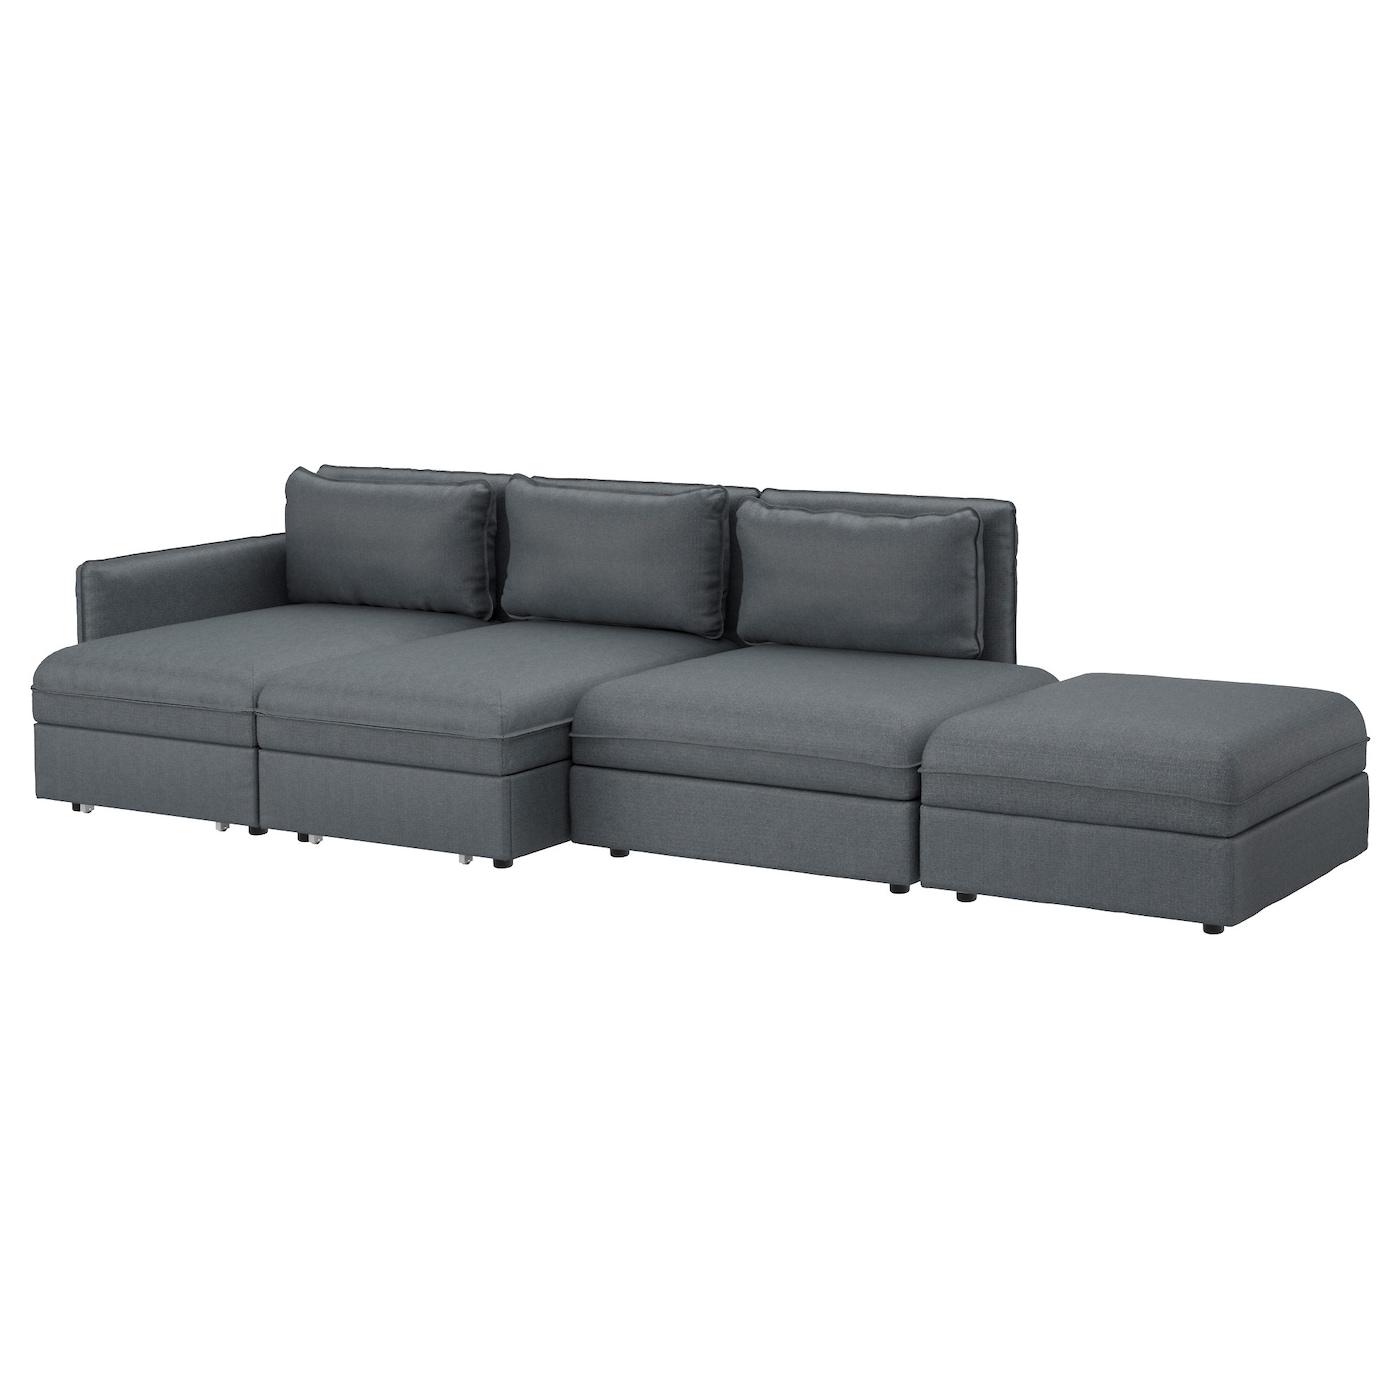 Corner Sofa Beds Futons & Chair Beds